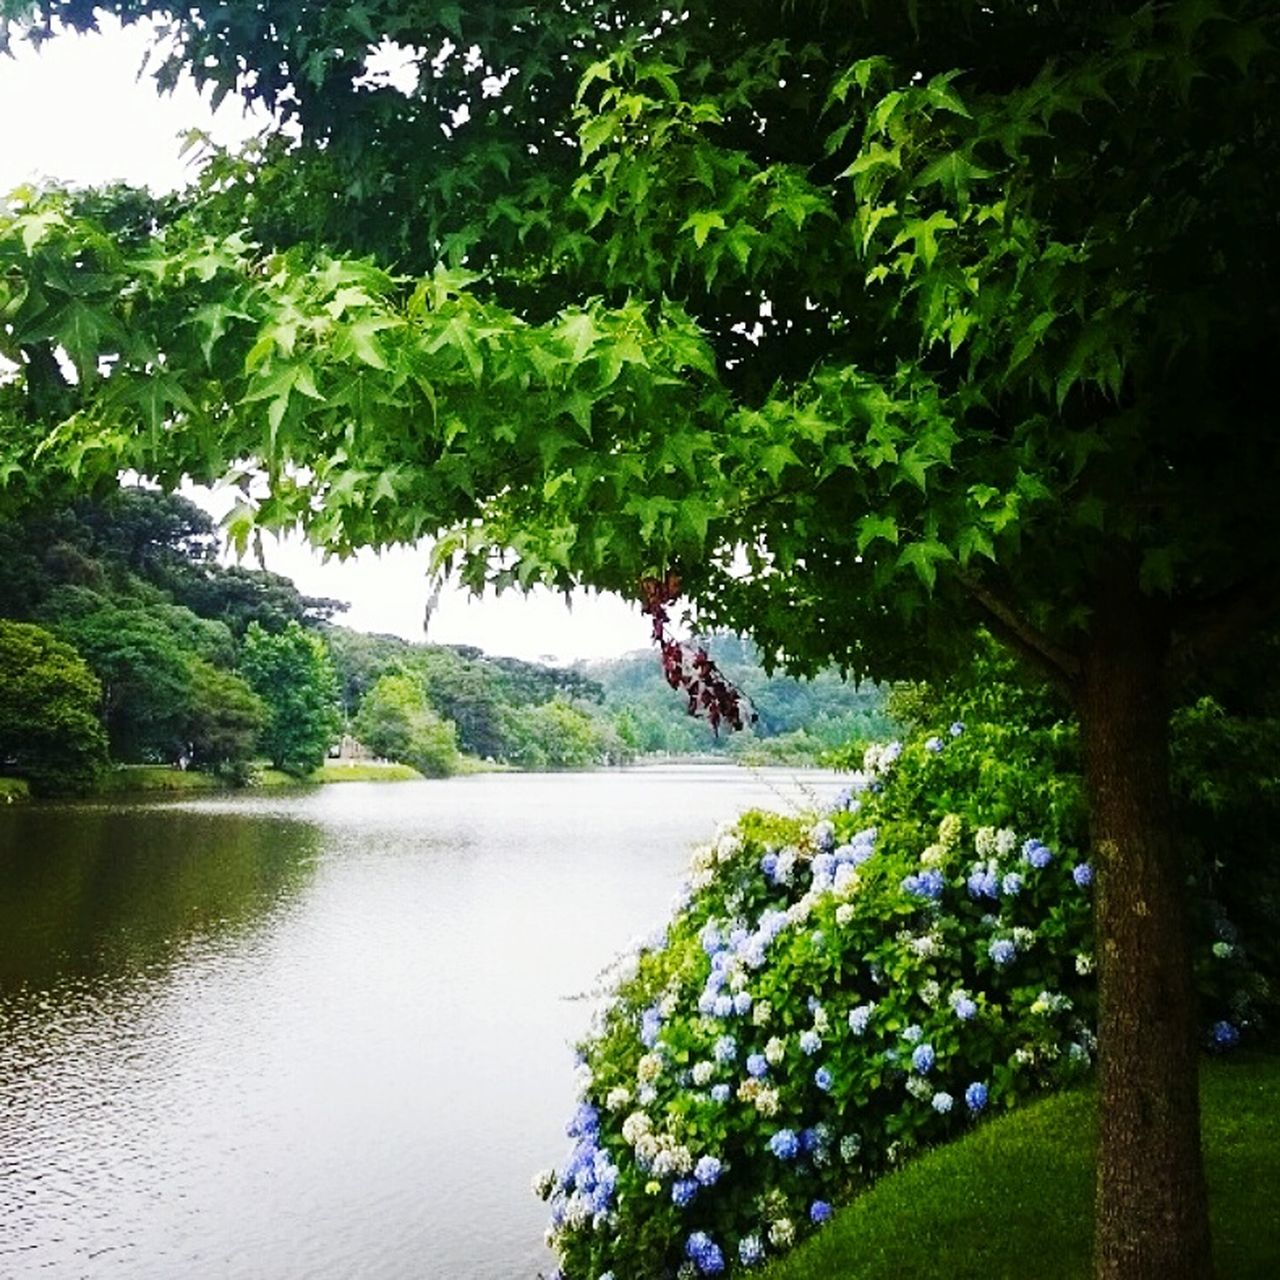 tree, nature, growth, beauty in nature, water, green color, plant, tranquility, day, outdoors, no people, tranquil scene, flower, scenics, freshness, sky